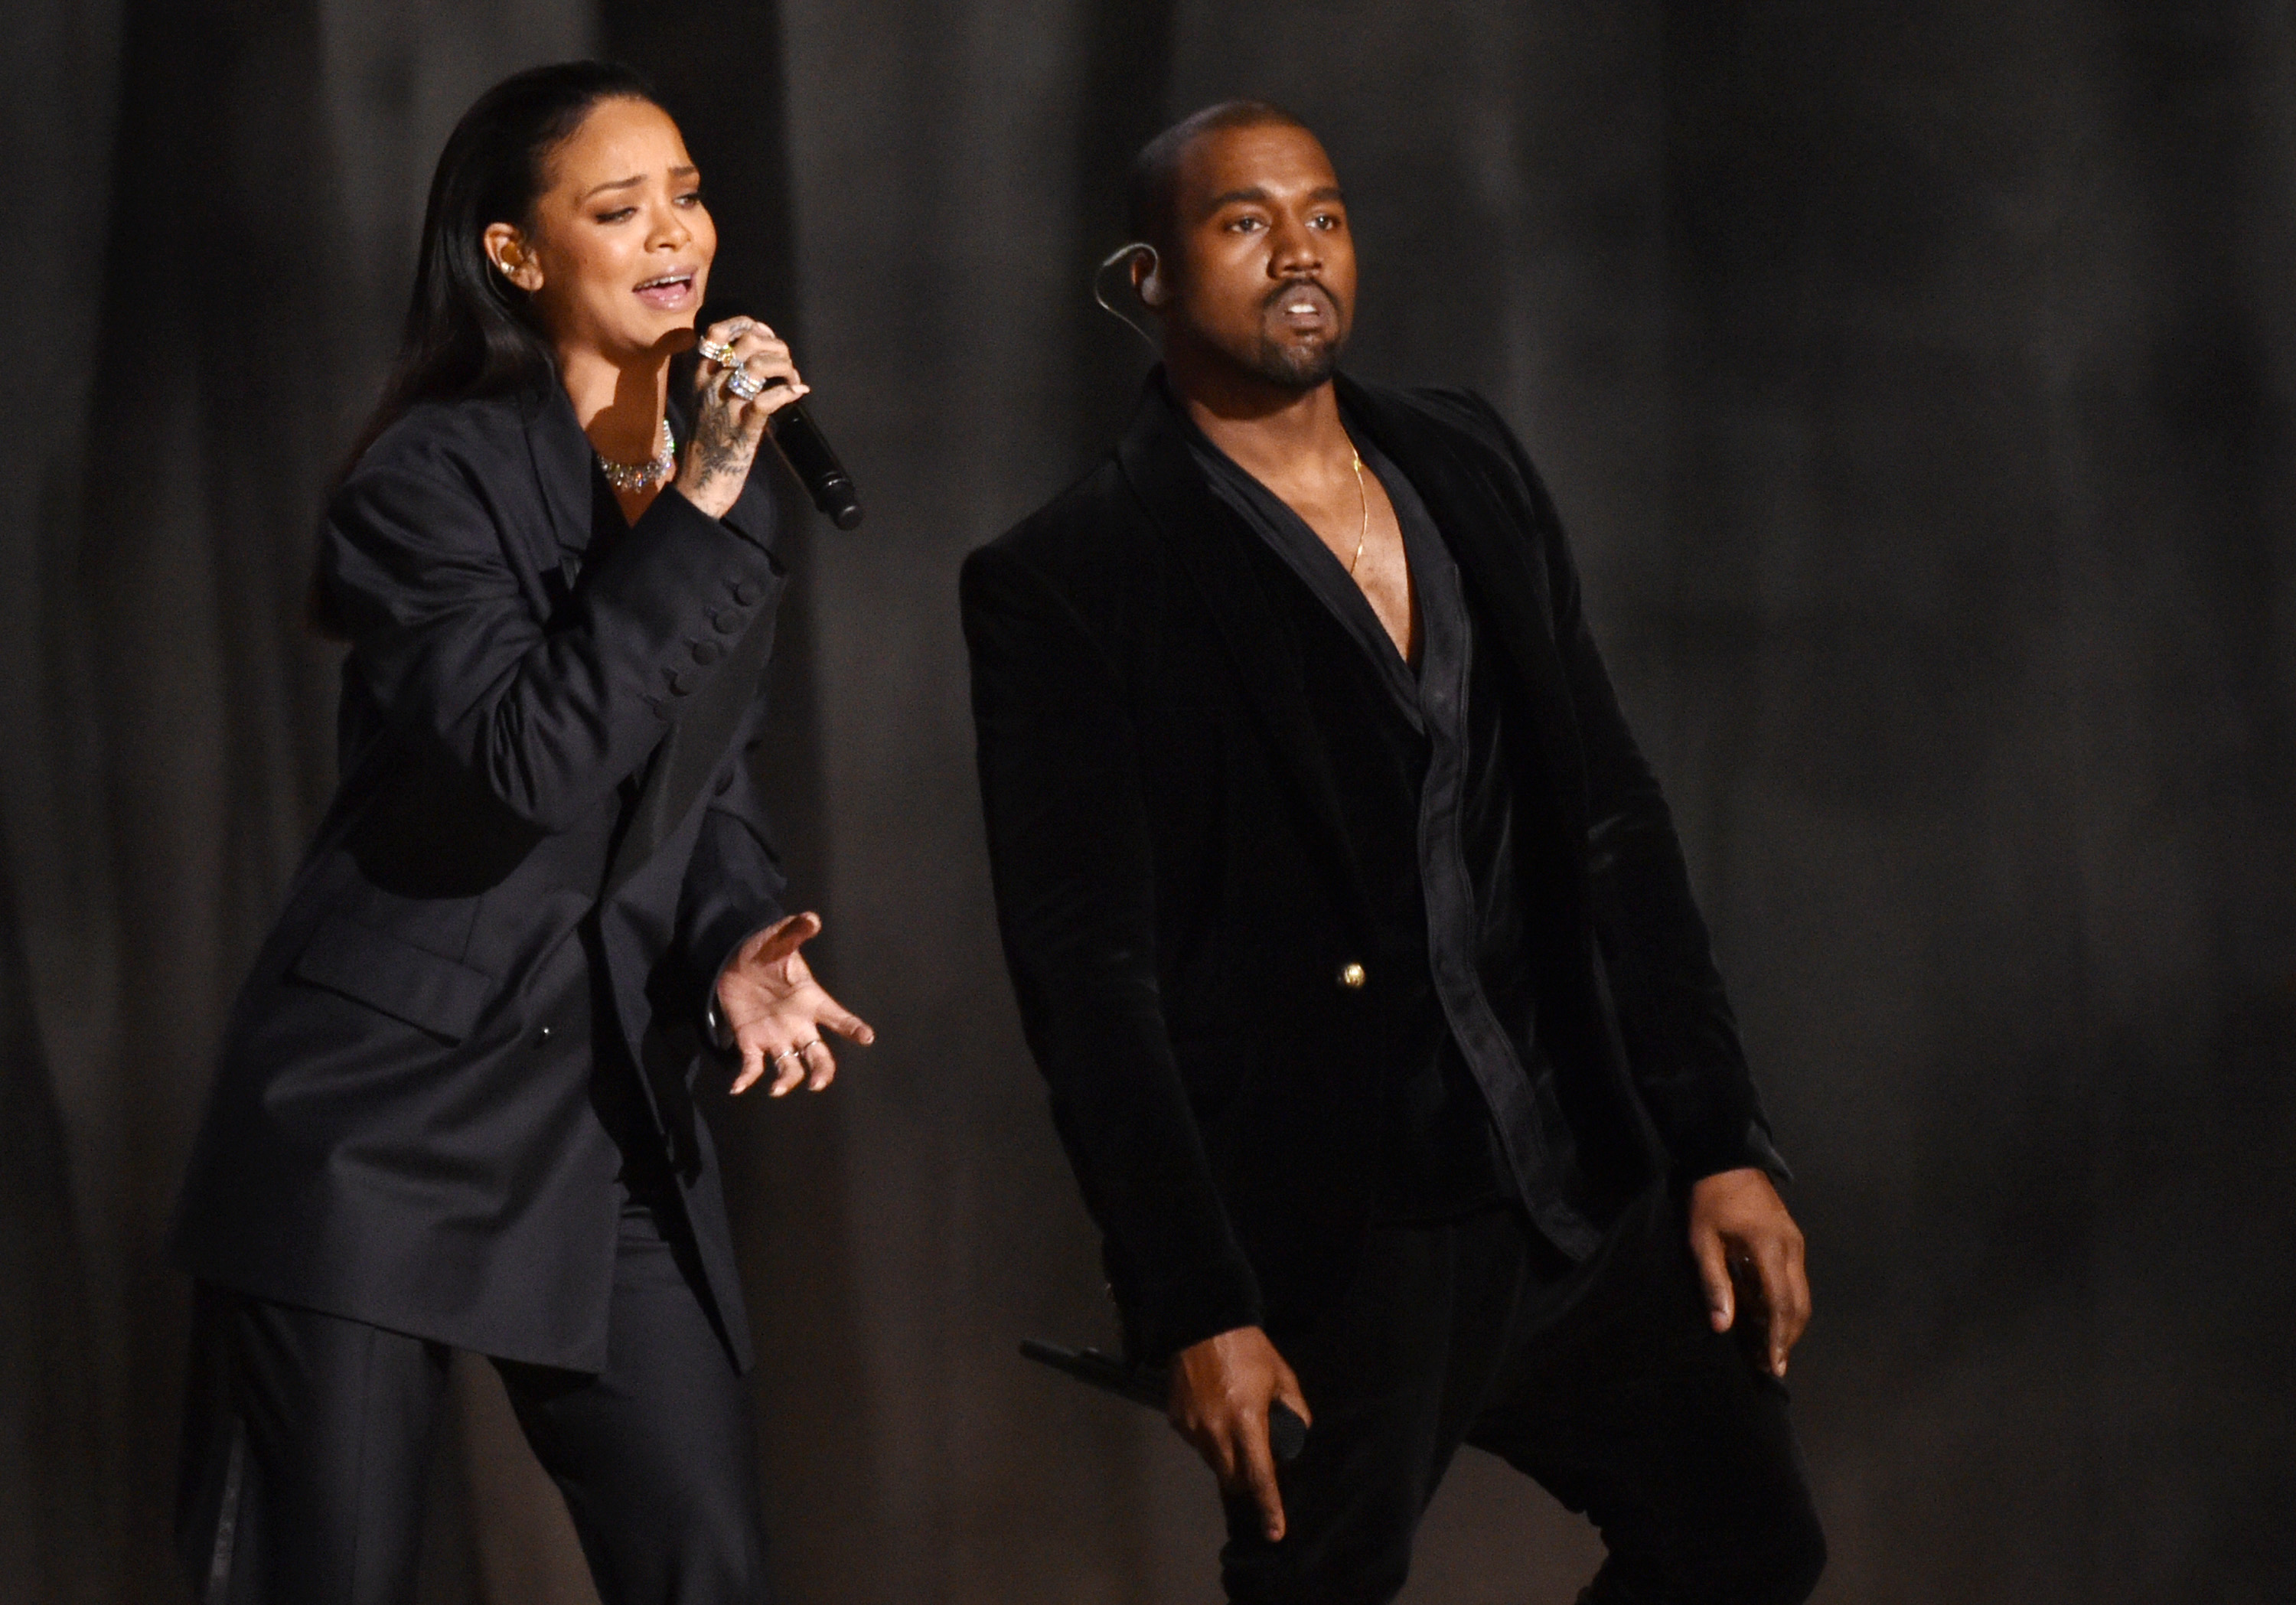 Kanye West tweets apology to Beck for Grammys disruption